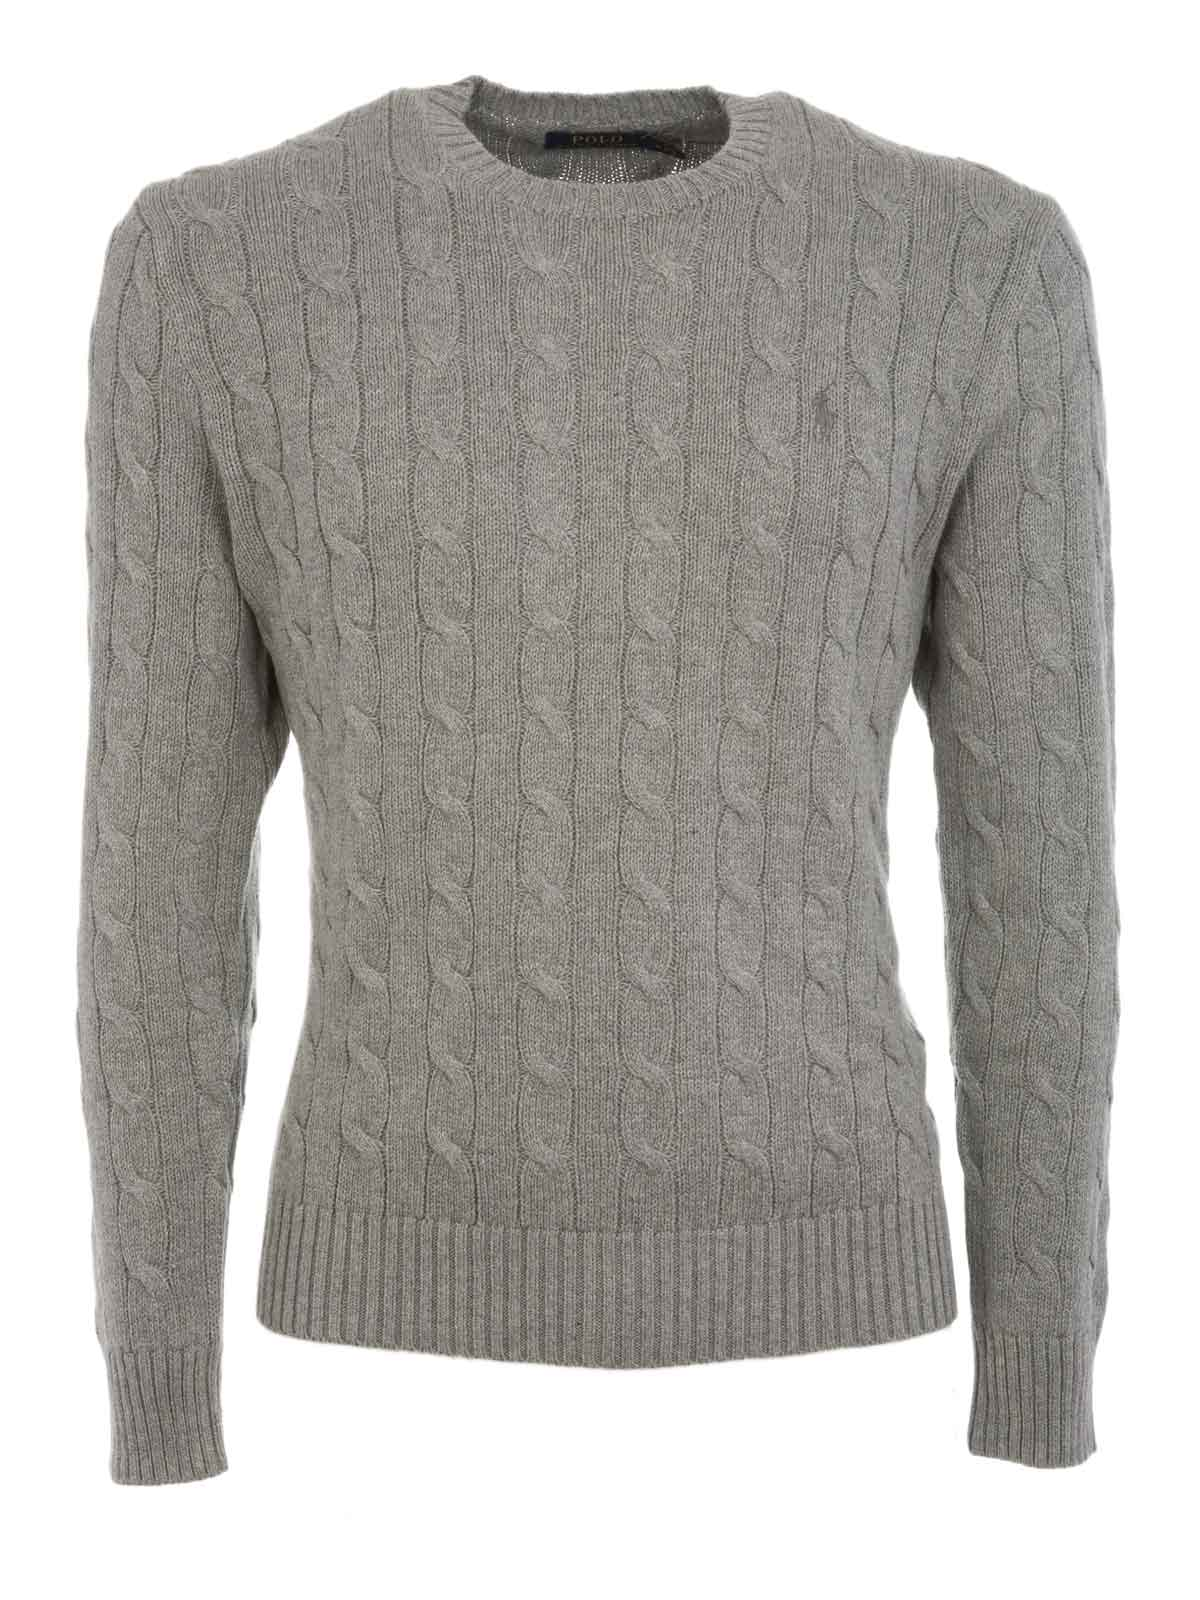 7930db340444 POLO RALPH LAUREN Cable-Knit Cotone Sweater Andover Heather ...